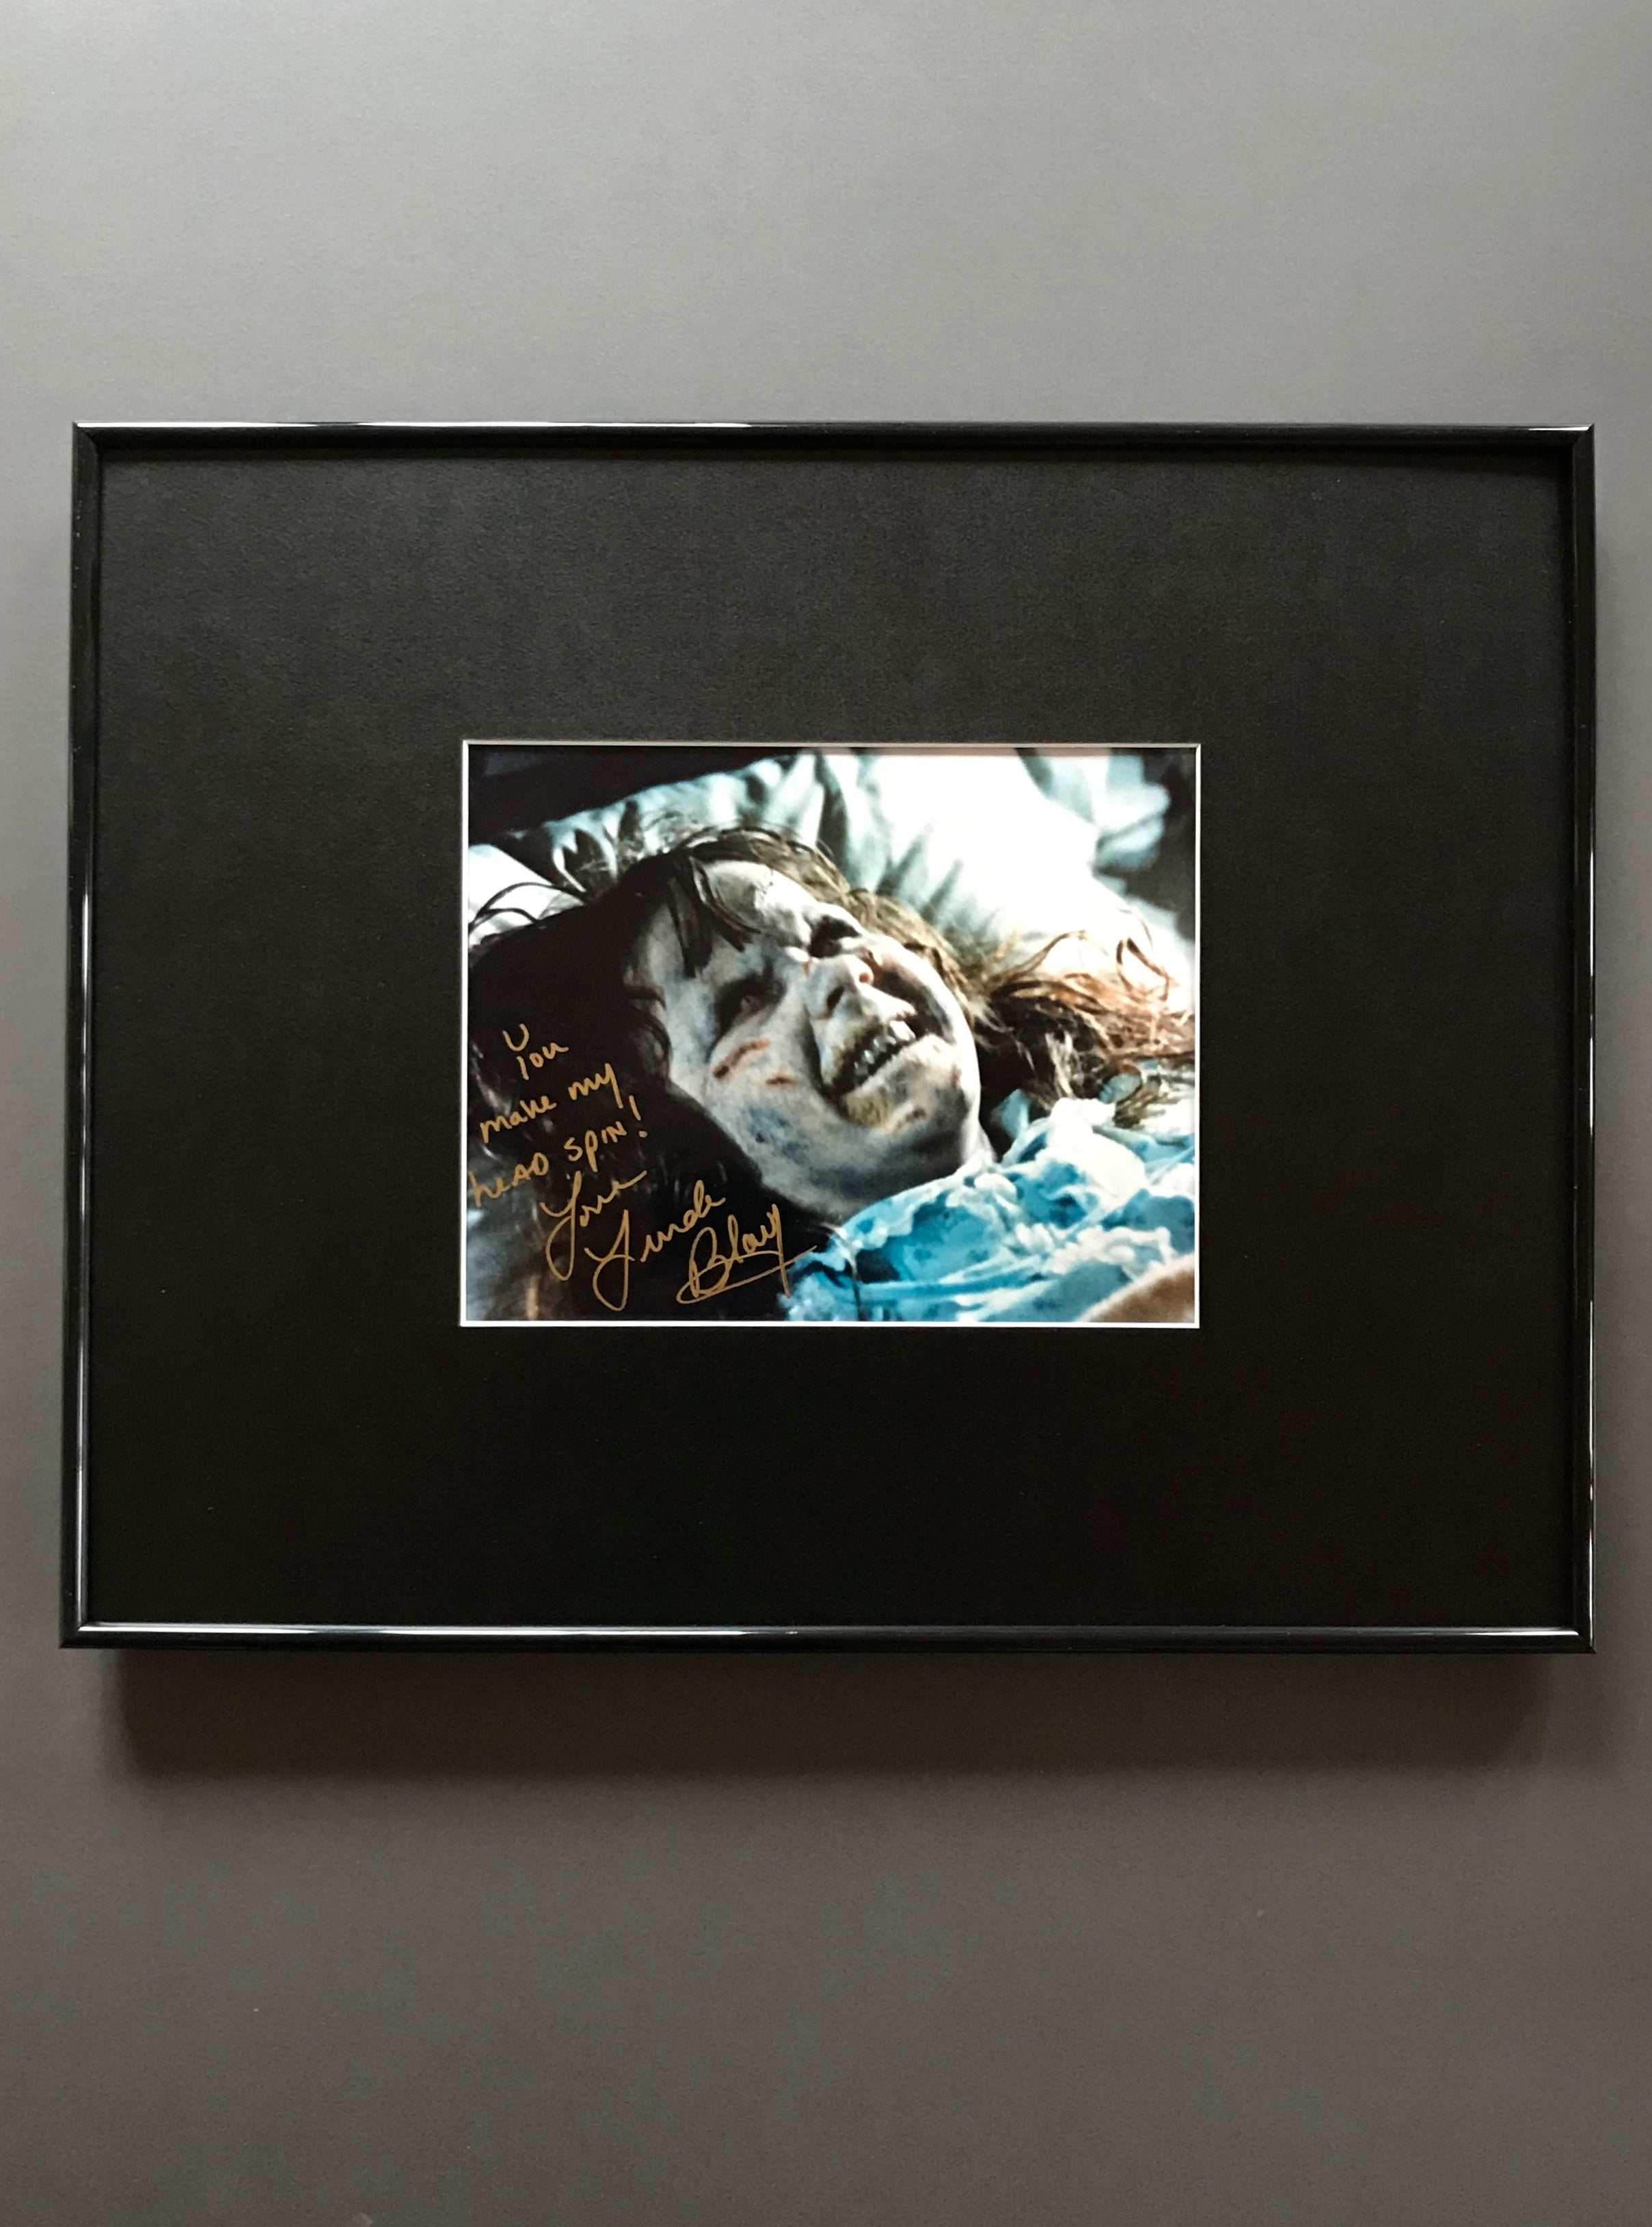 The Exorcist (1973) - A Framed Autographed Still